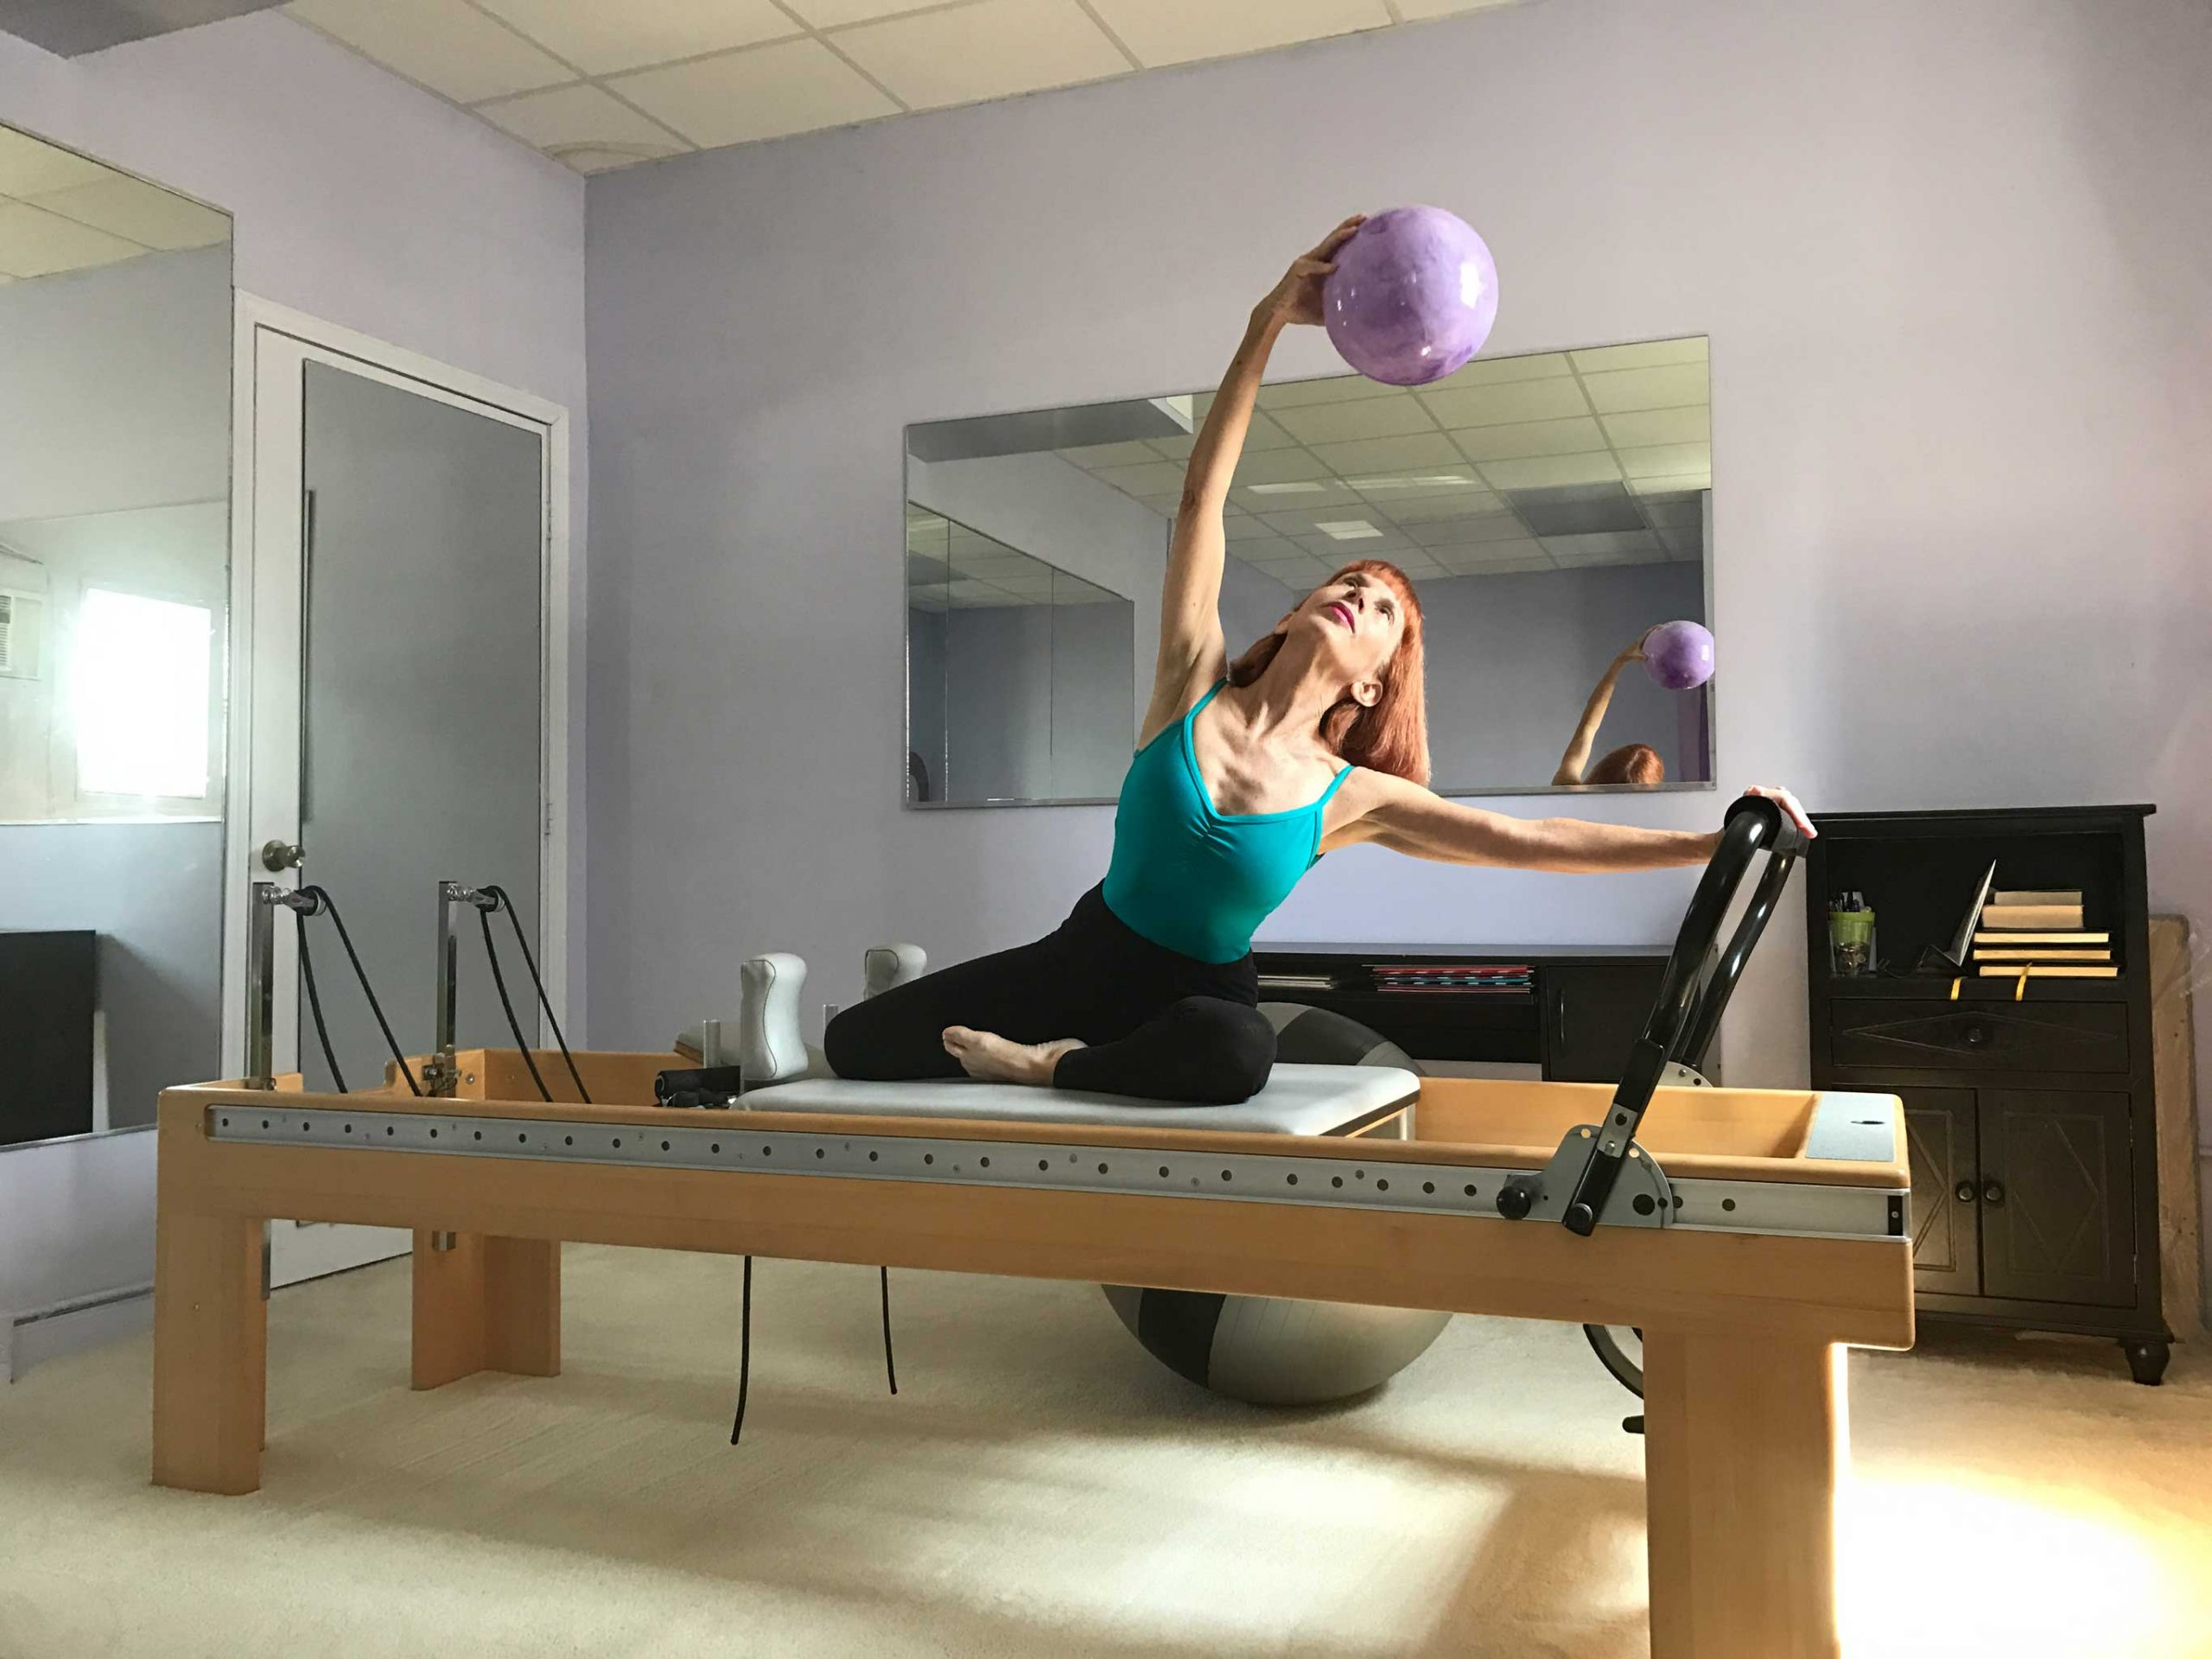 Patty Haft demonstrating use of the reformer